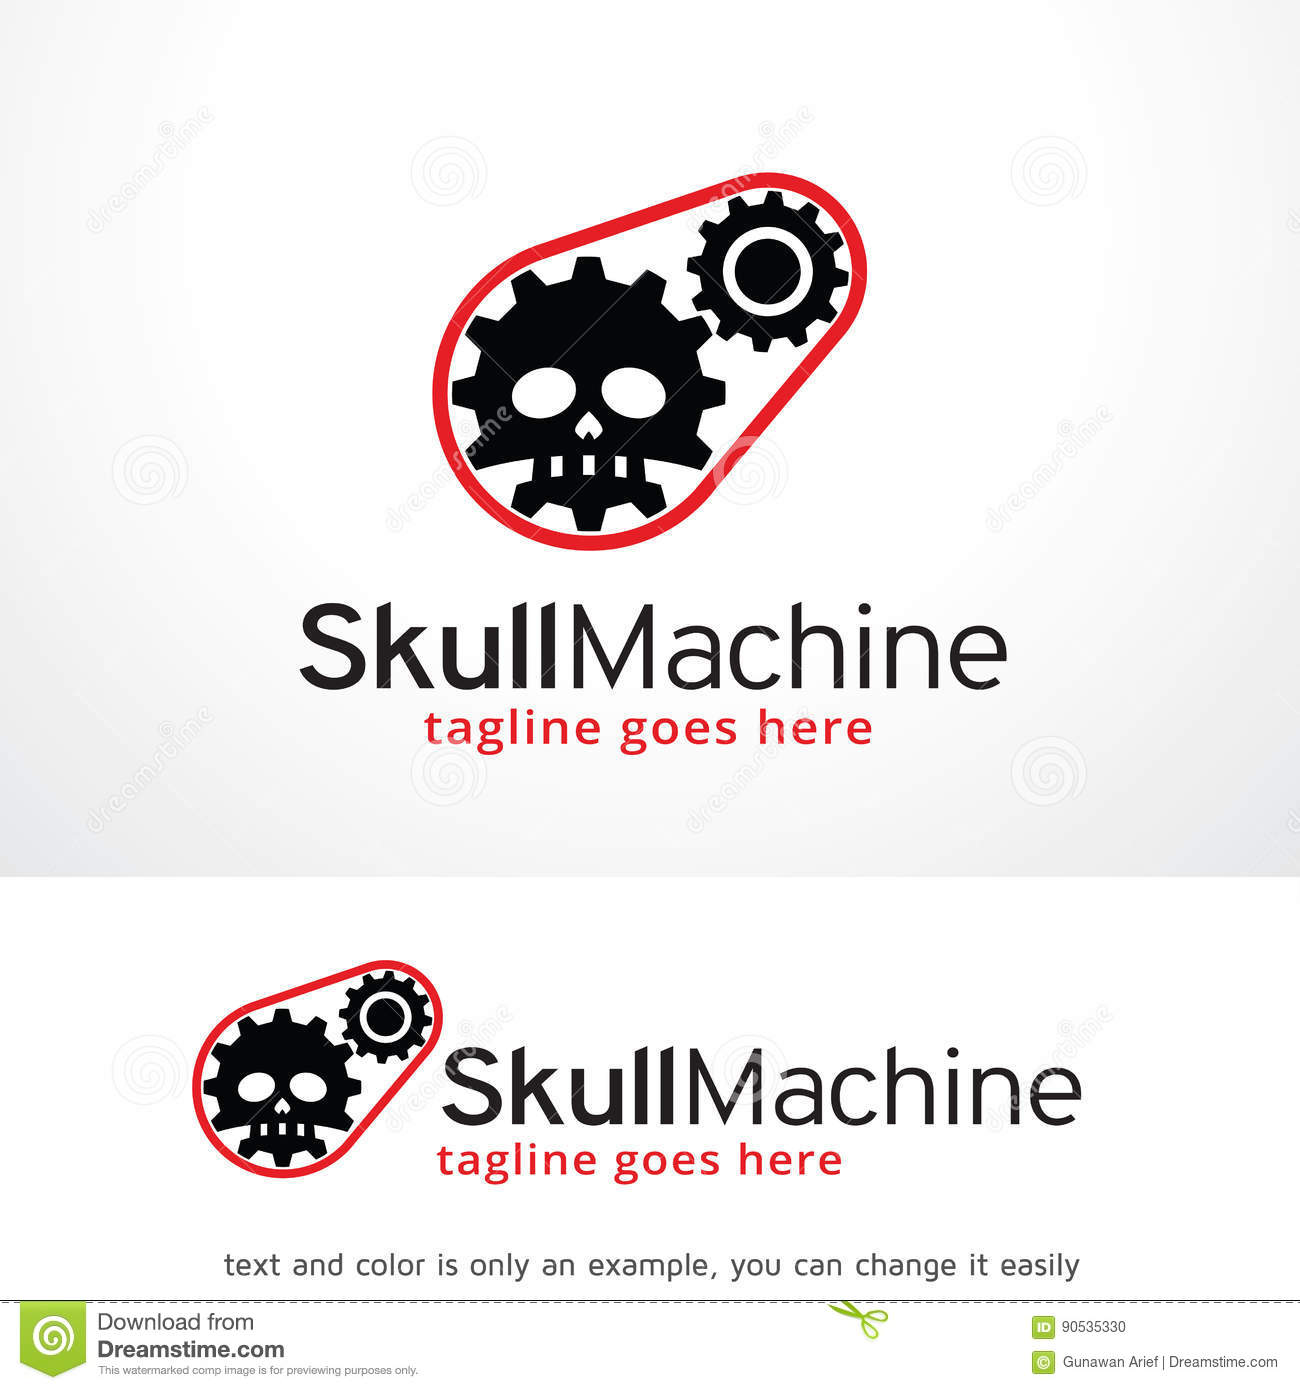 Skull machine logo template design vector emblem design concept skull machine logo template design vector emblem design concept creative symbol icon buycottarizona Images